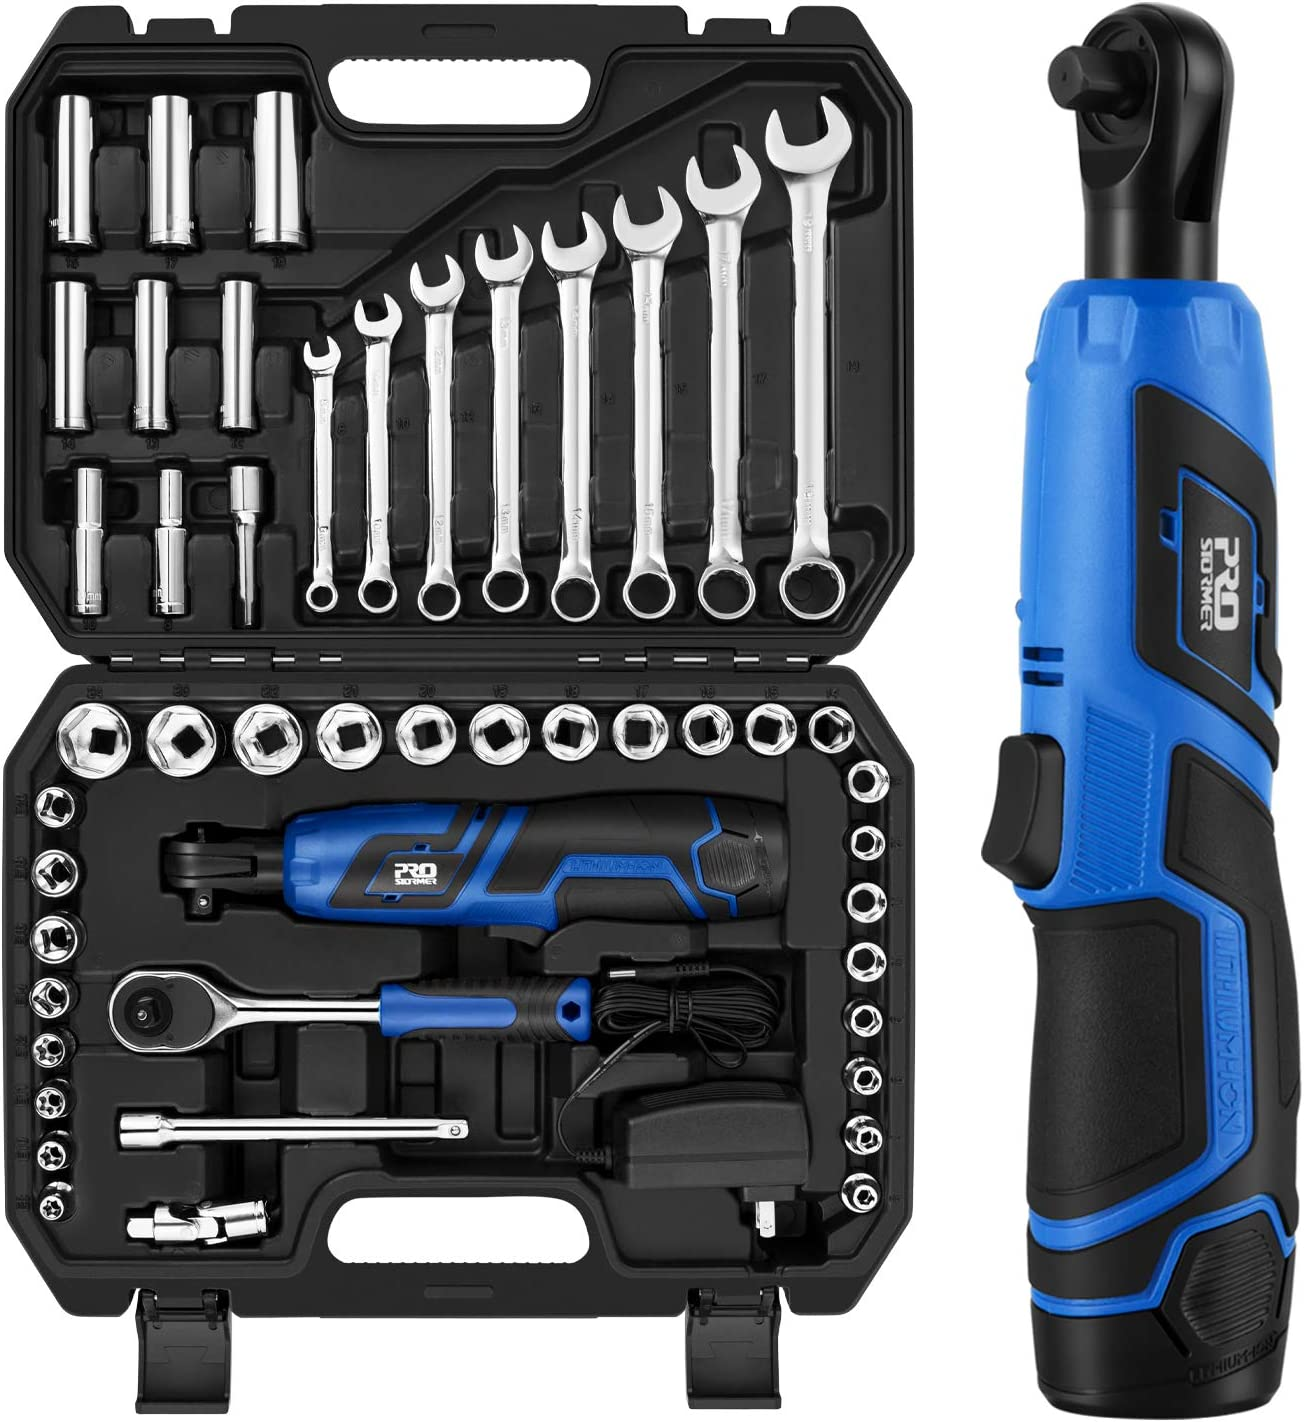 90° electric rechargeable ratchet wrench 12v battery truss tools kit